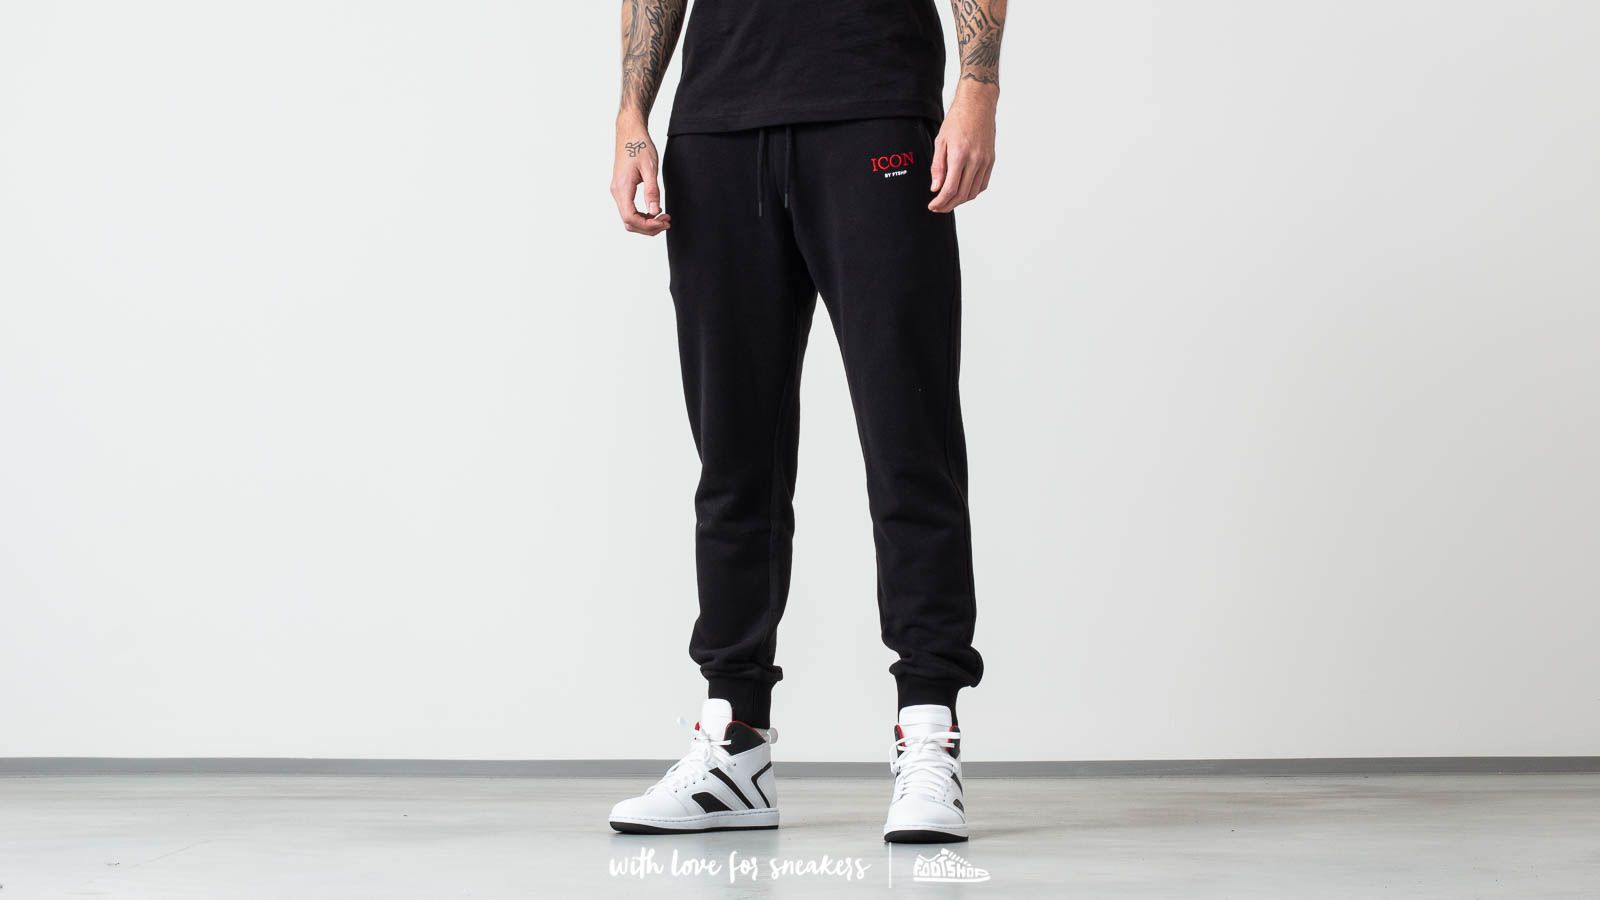 FTSHP x Rytmus Icon Sweatpants